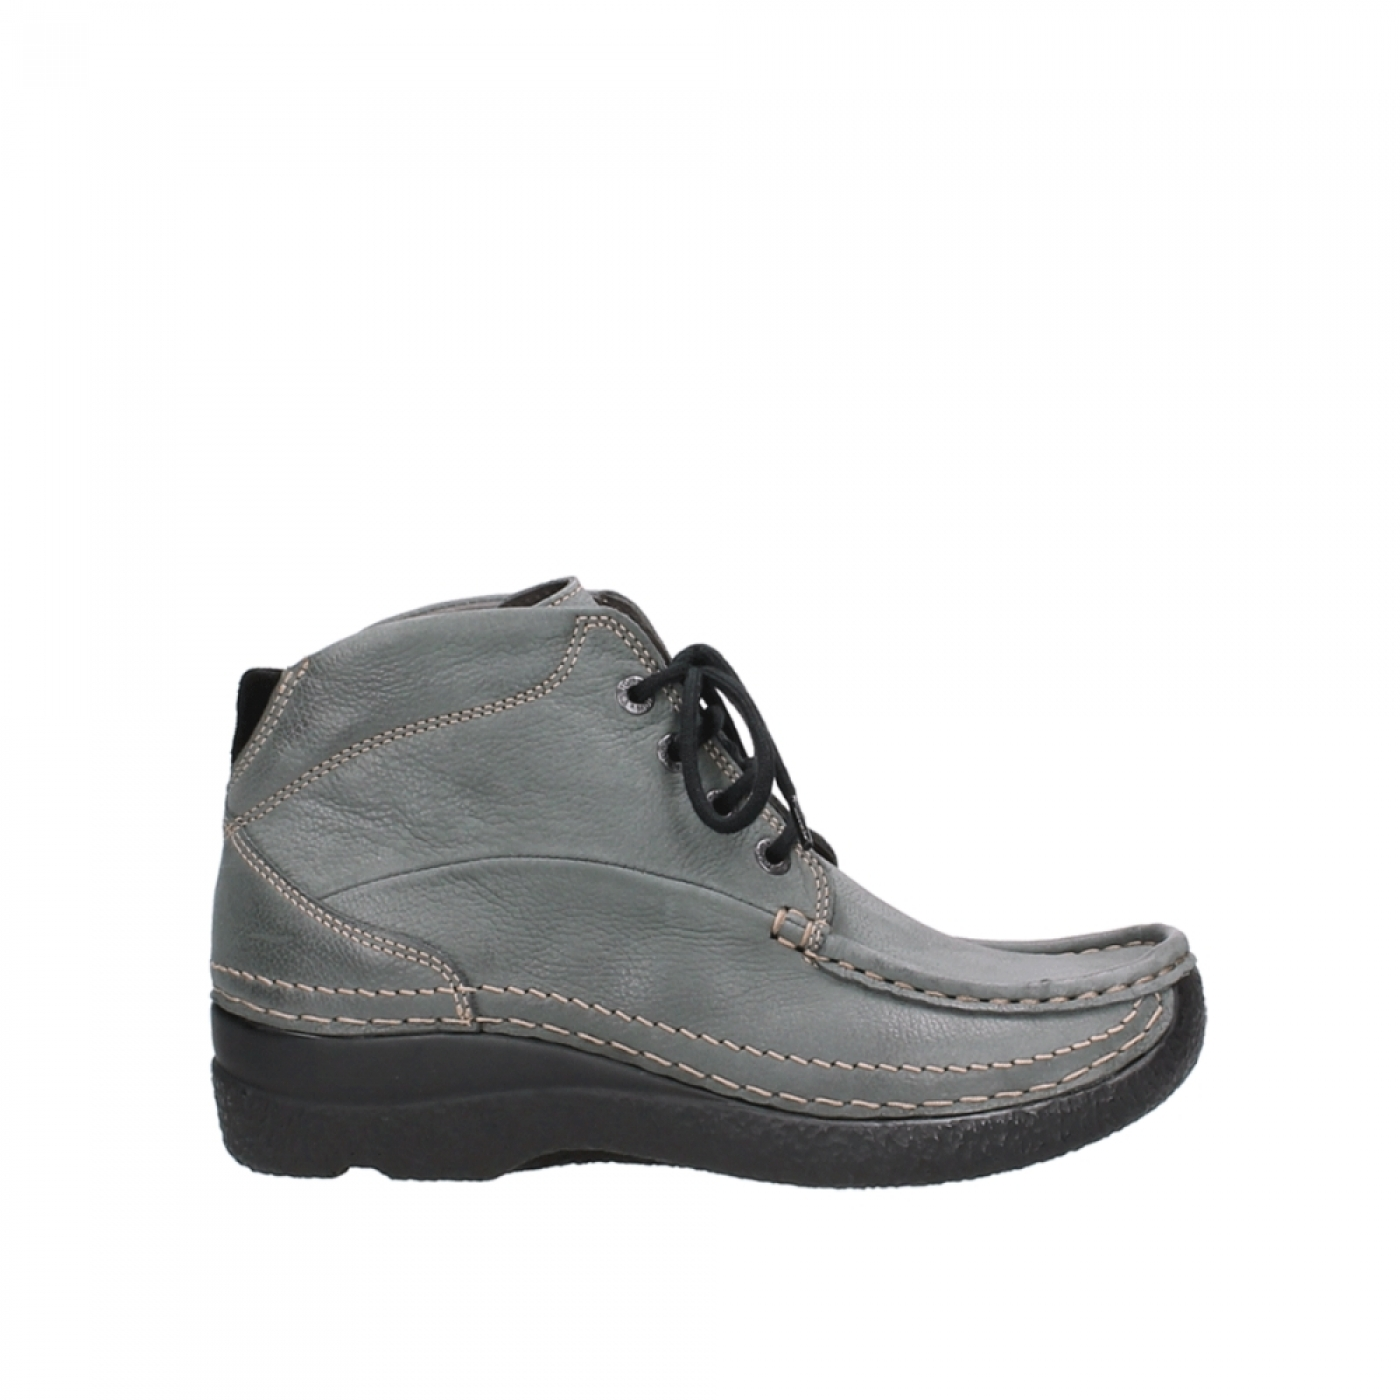 Shoes Suitable For Orthotics Uk